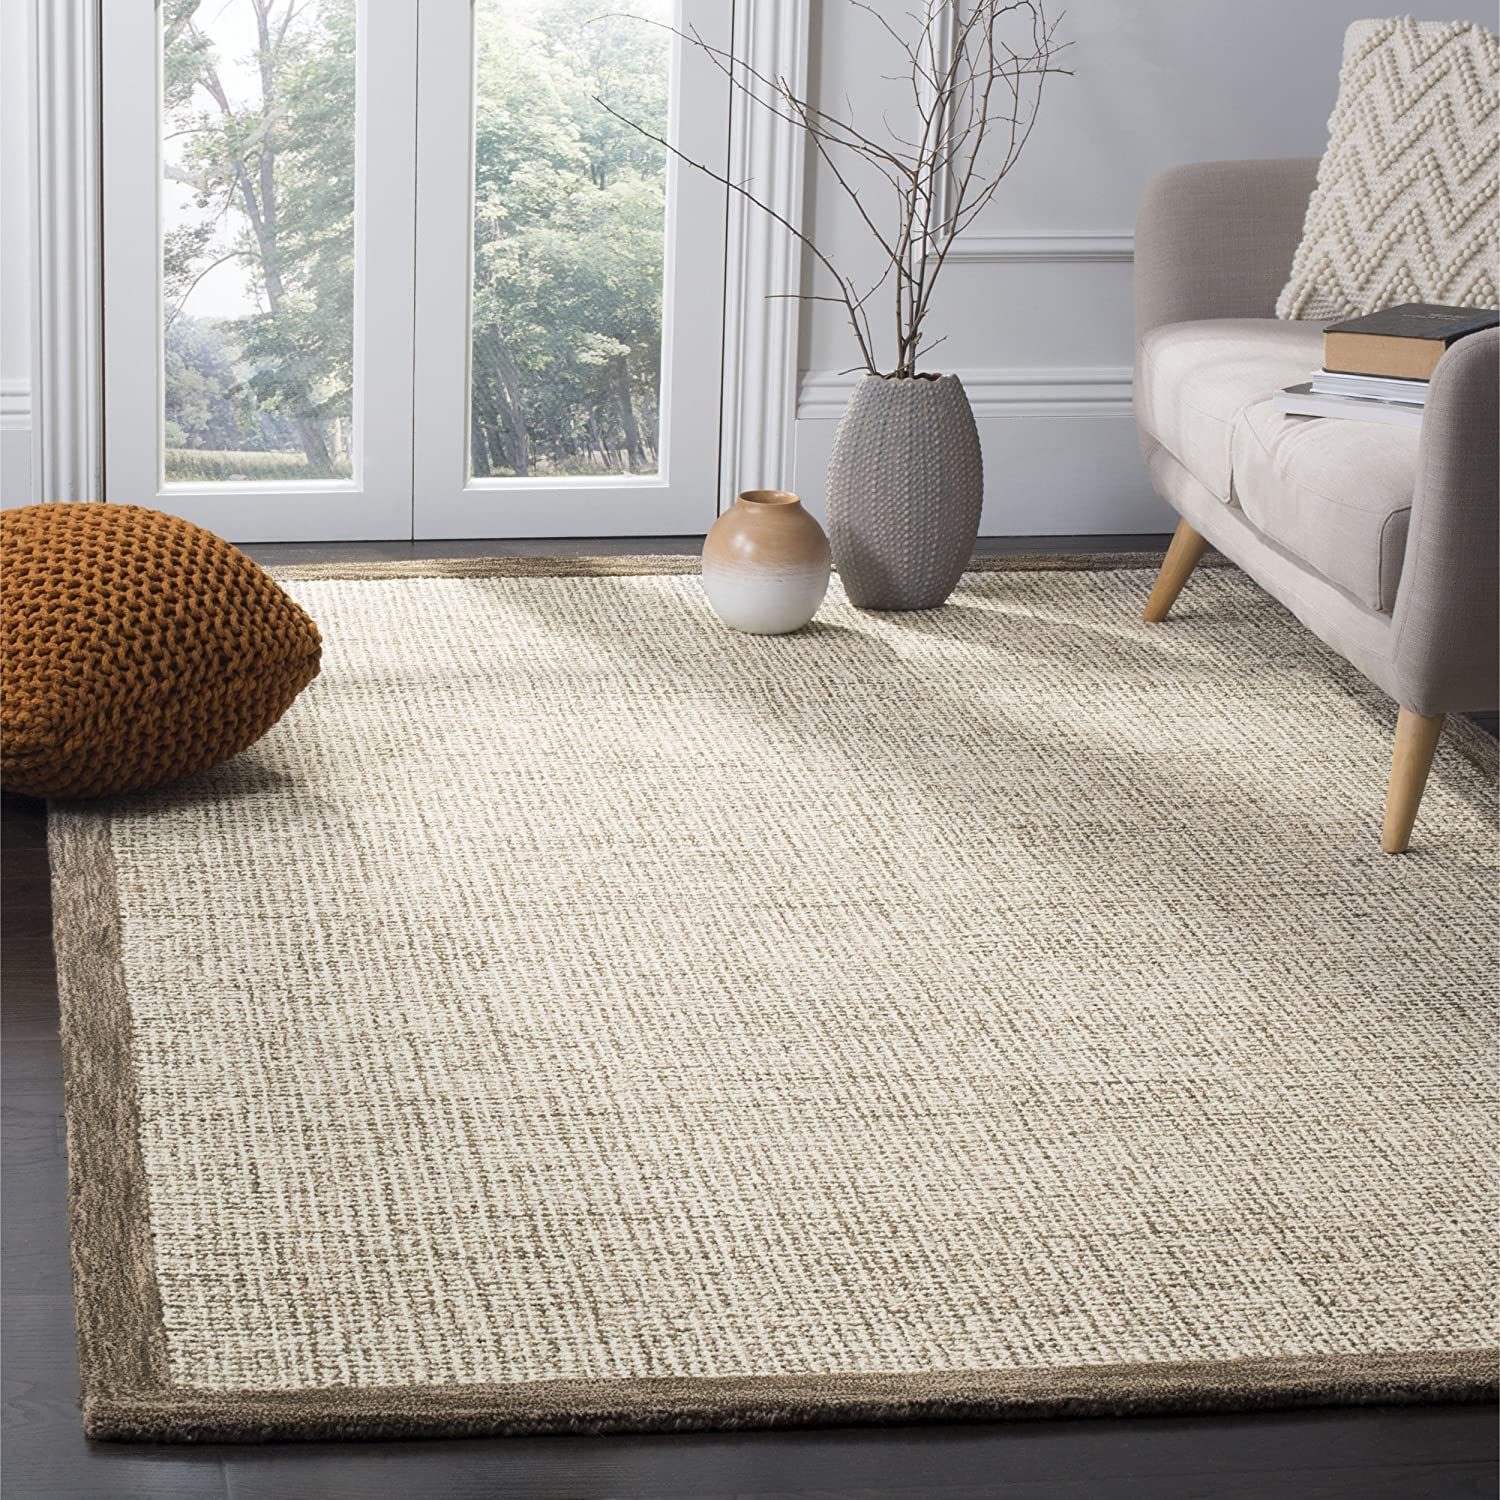 Safavieh Abstract Collection Abt220d Handmade Premium Wool Area Rug 8 X 10 Brown Ivory Furniture Decor